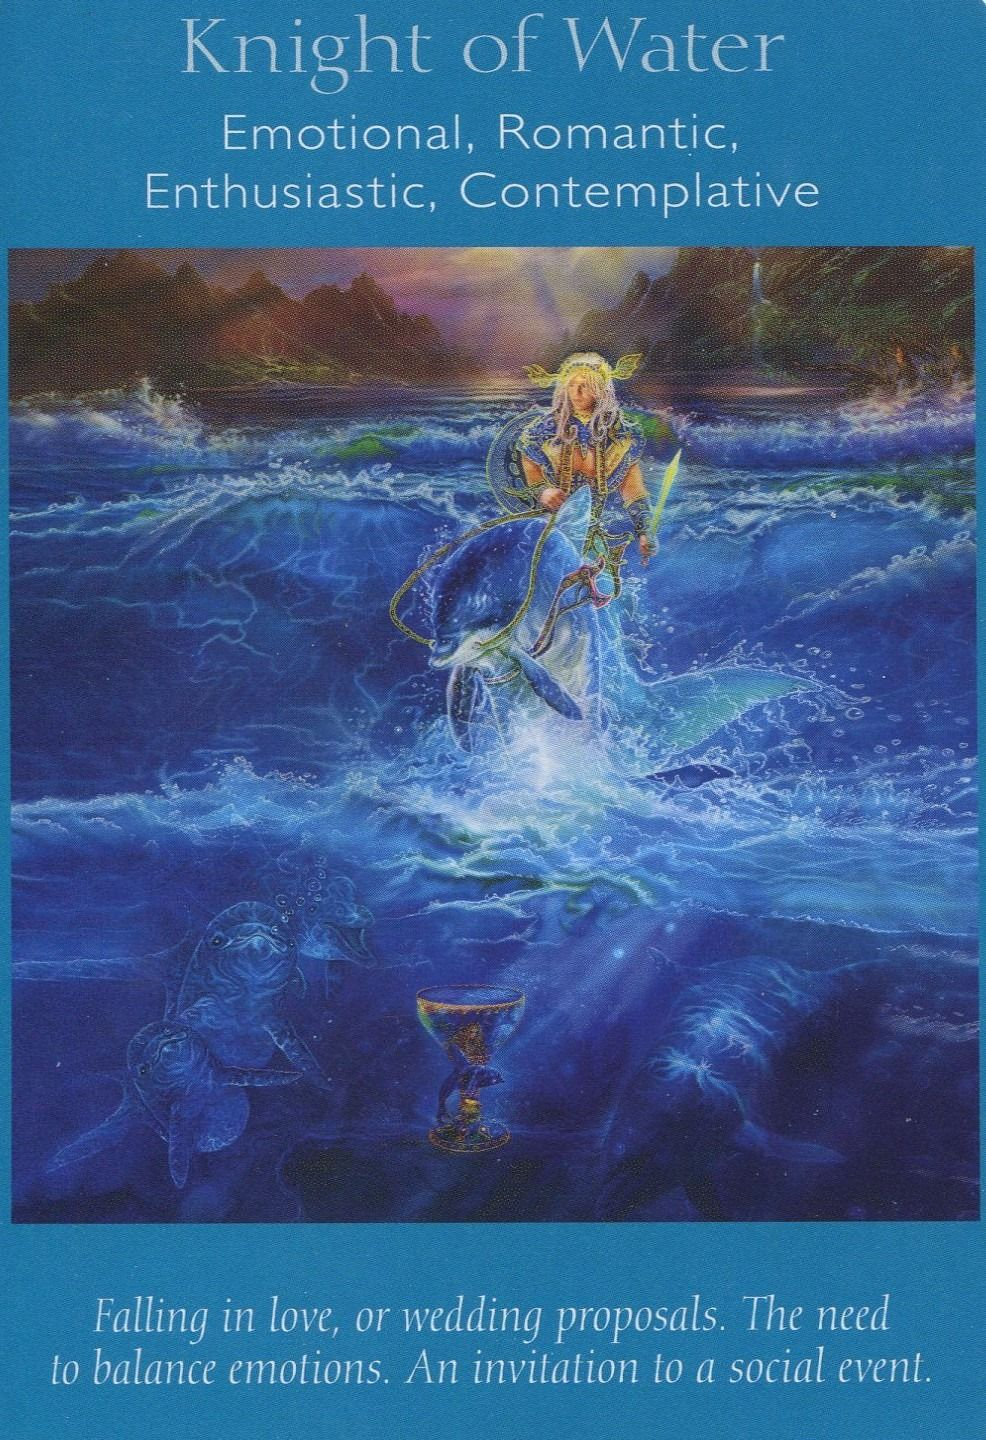 King of Water - Archangel Power Tarot Card Deck